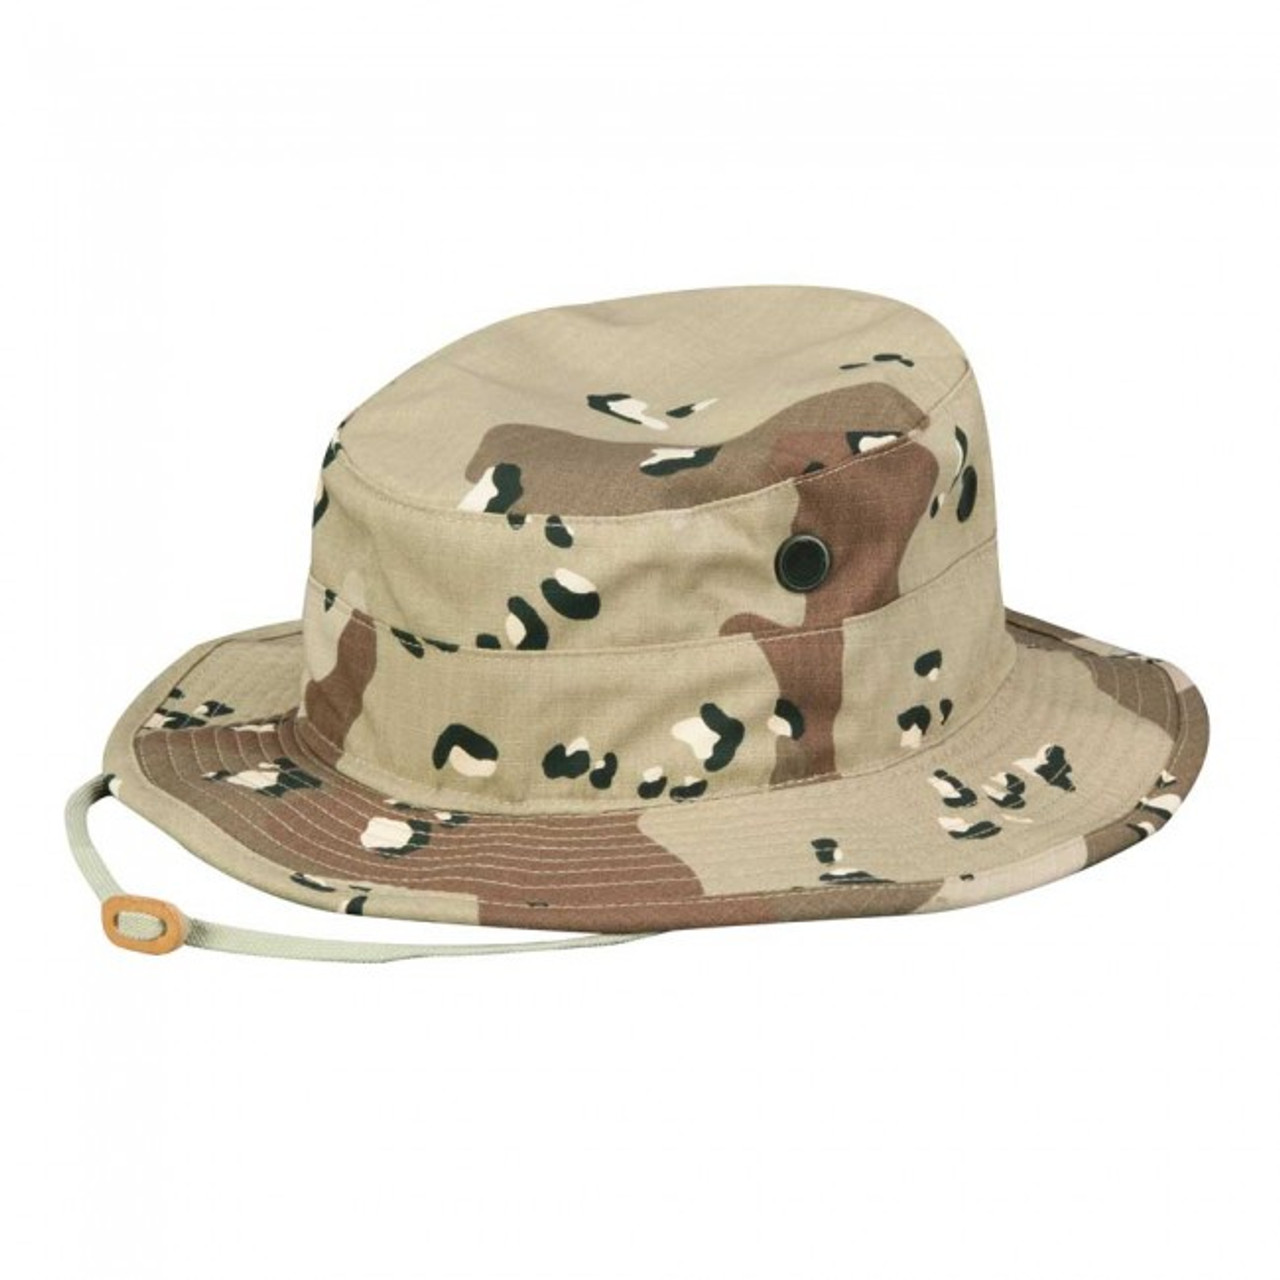 Genuine US Military Issue 6-Color Desert Boonie Hat Size 6 3 4 ... 9753a06d1